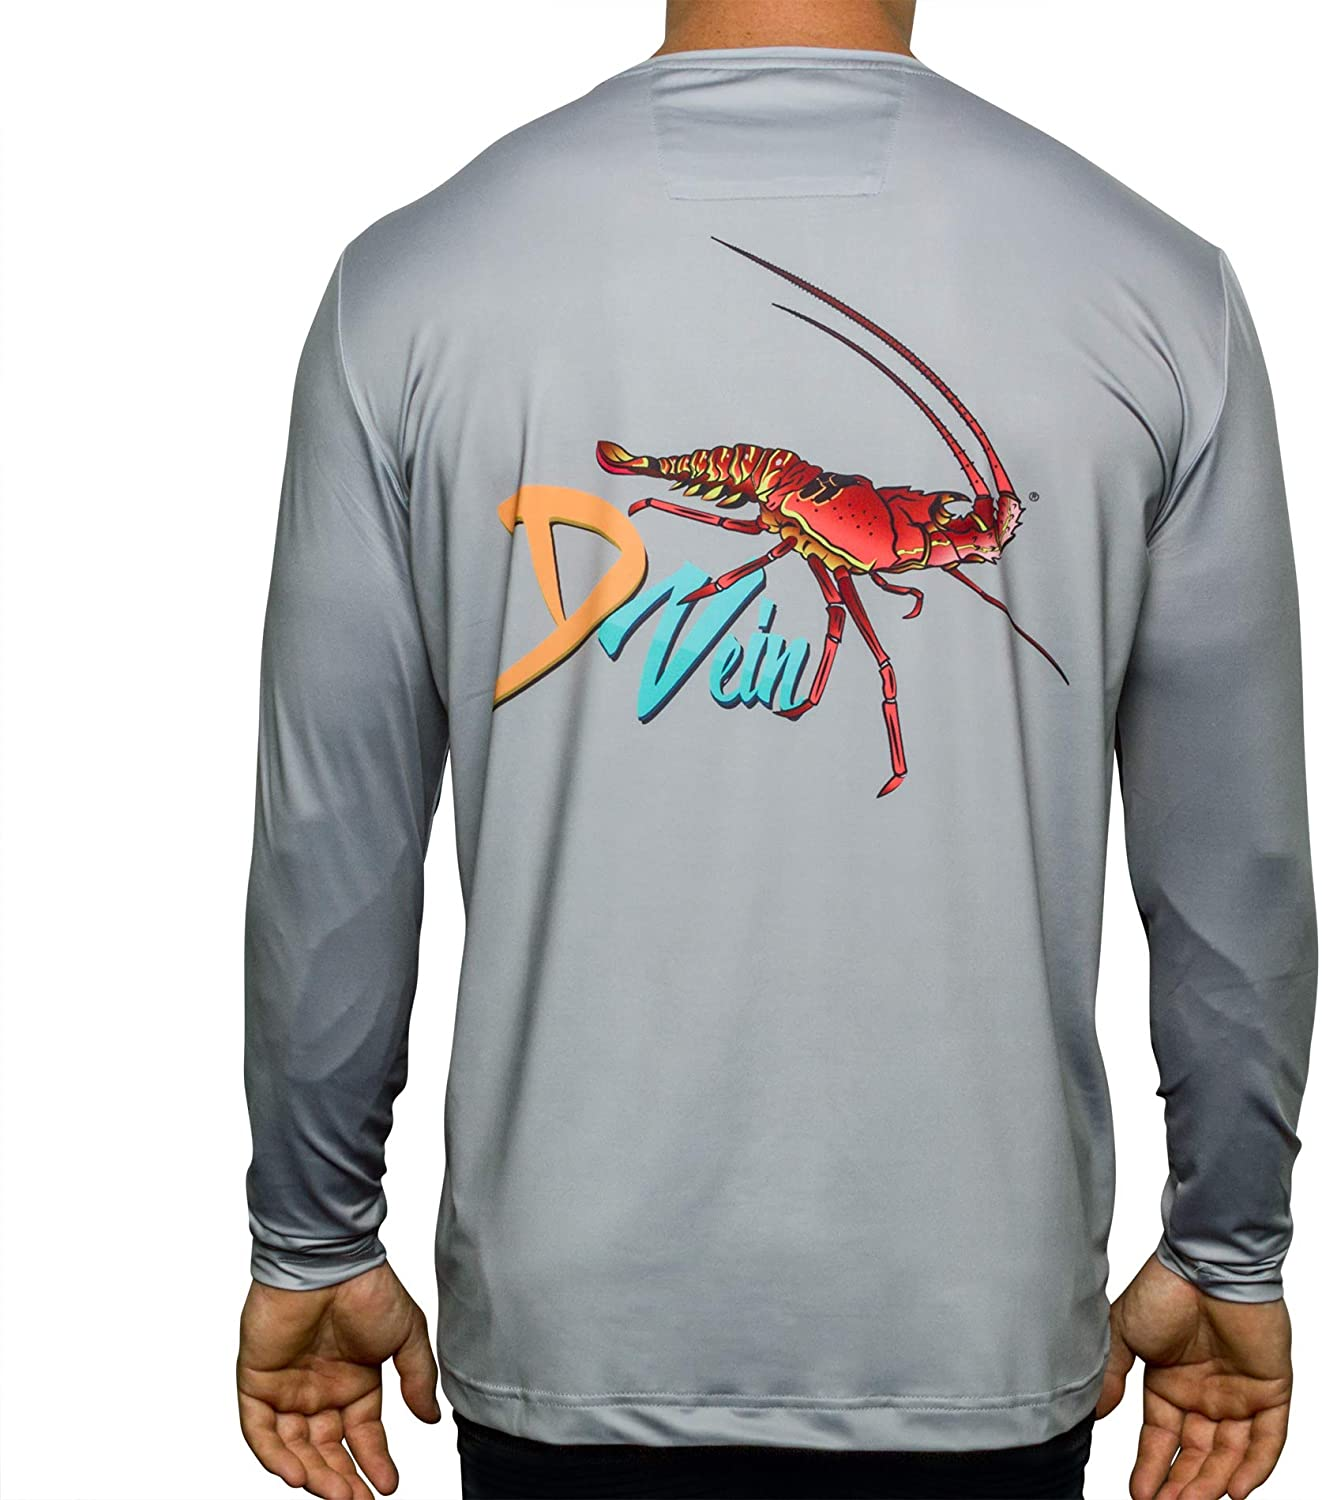 D Vein Men's Fishing Shirts with SPF 50+, Long Sleeve Dry-Fit, White - Lightweight Sun Shirt with Ultraviolet Protection